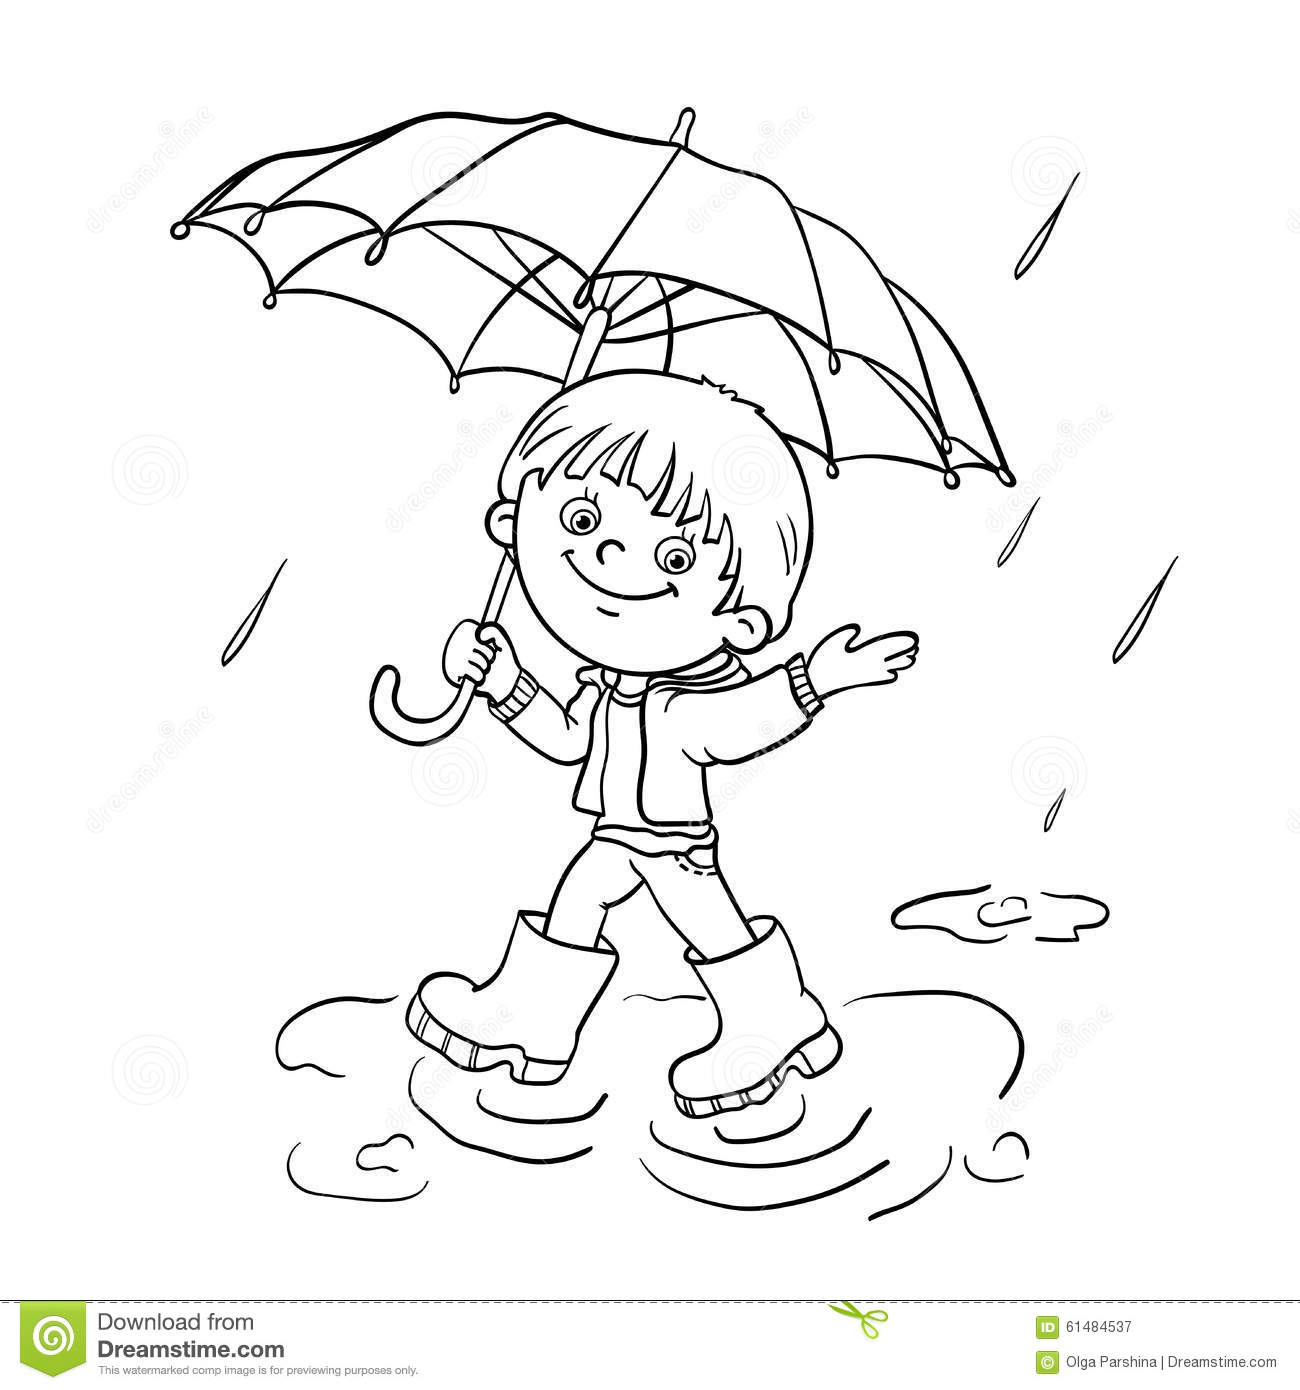 Spring rain coloring pages - Coloring Page Outline Of A Boy Walking In The Rain